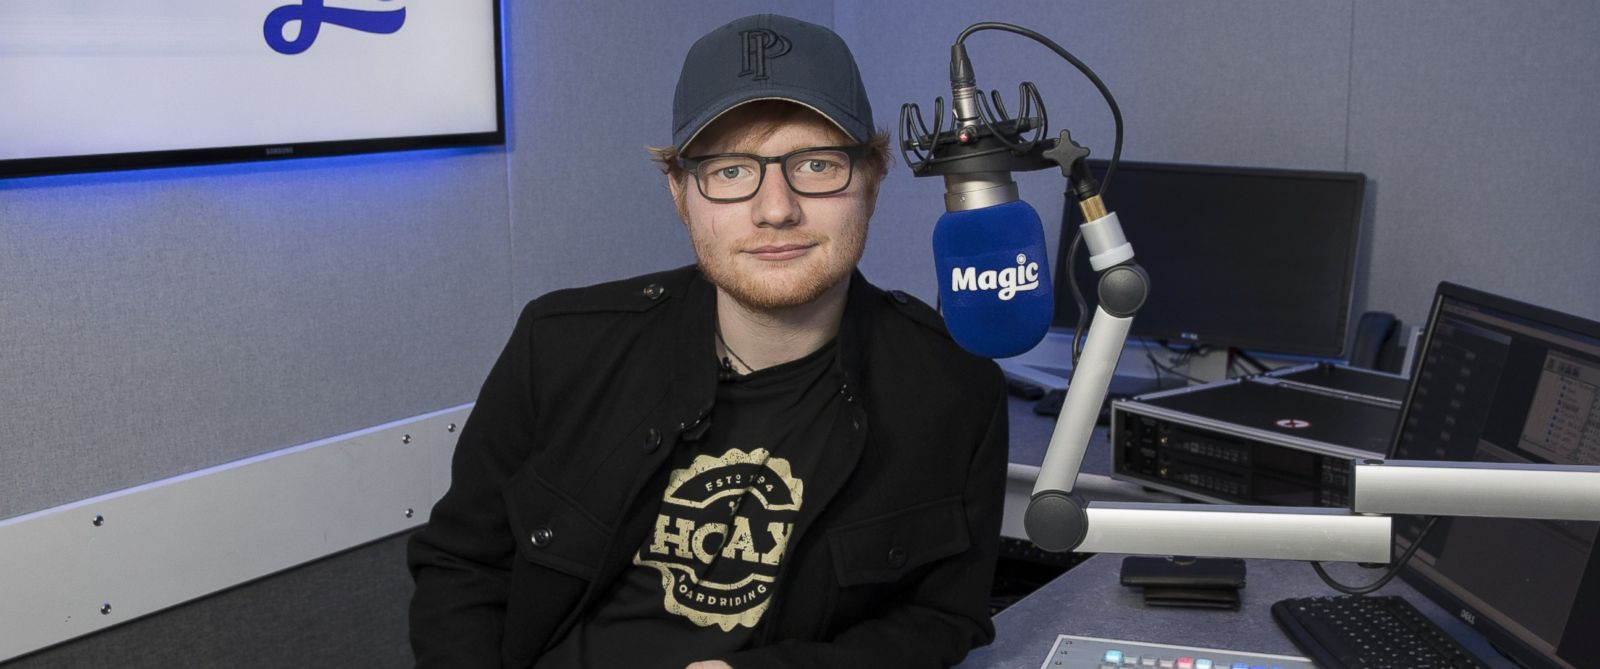 PHOTO: Ed Sheeran during his visit to Magic at Bauer Radio, on Jan. 6, 2017, in London.